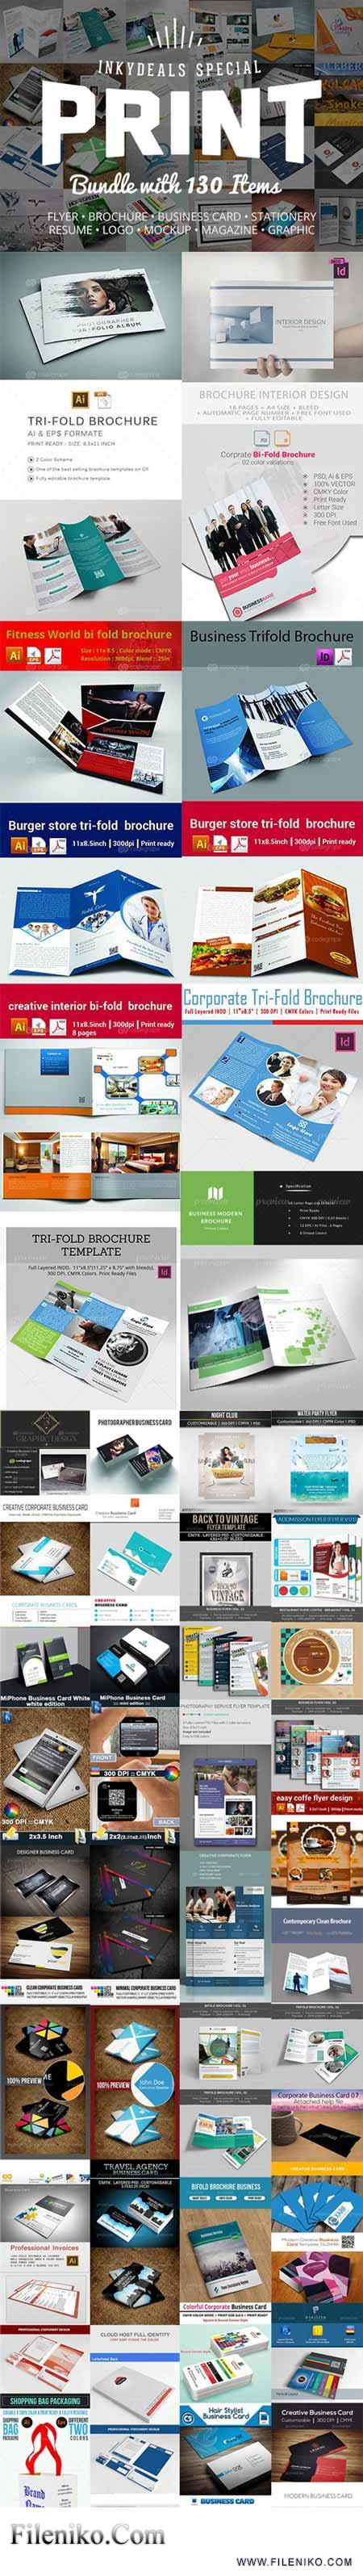 C-_Users_amir_Desktop_1442337757_the-ultimate-print-templates-bundle-with-130-items